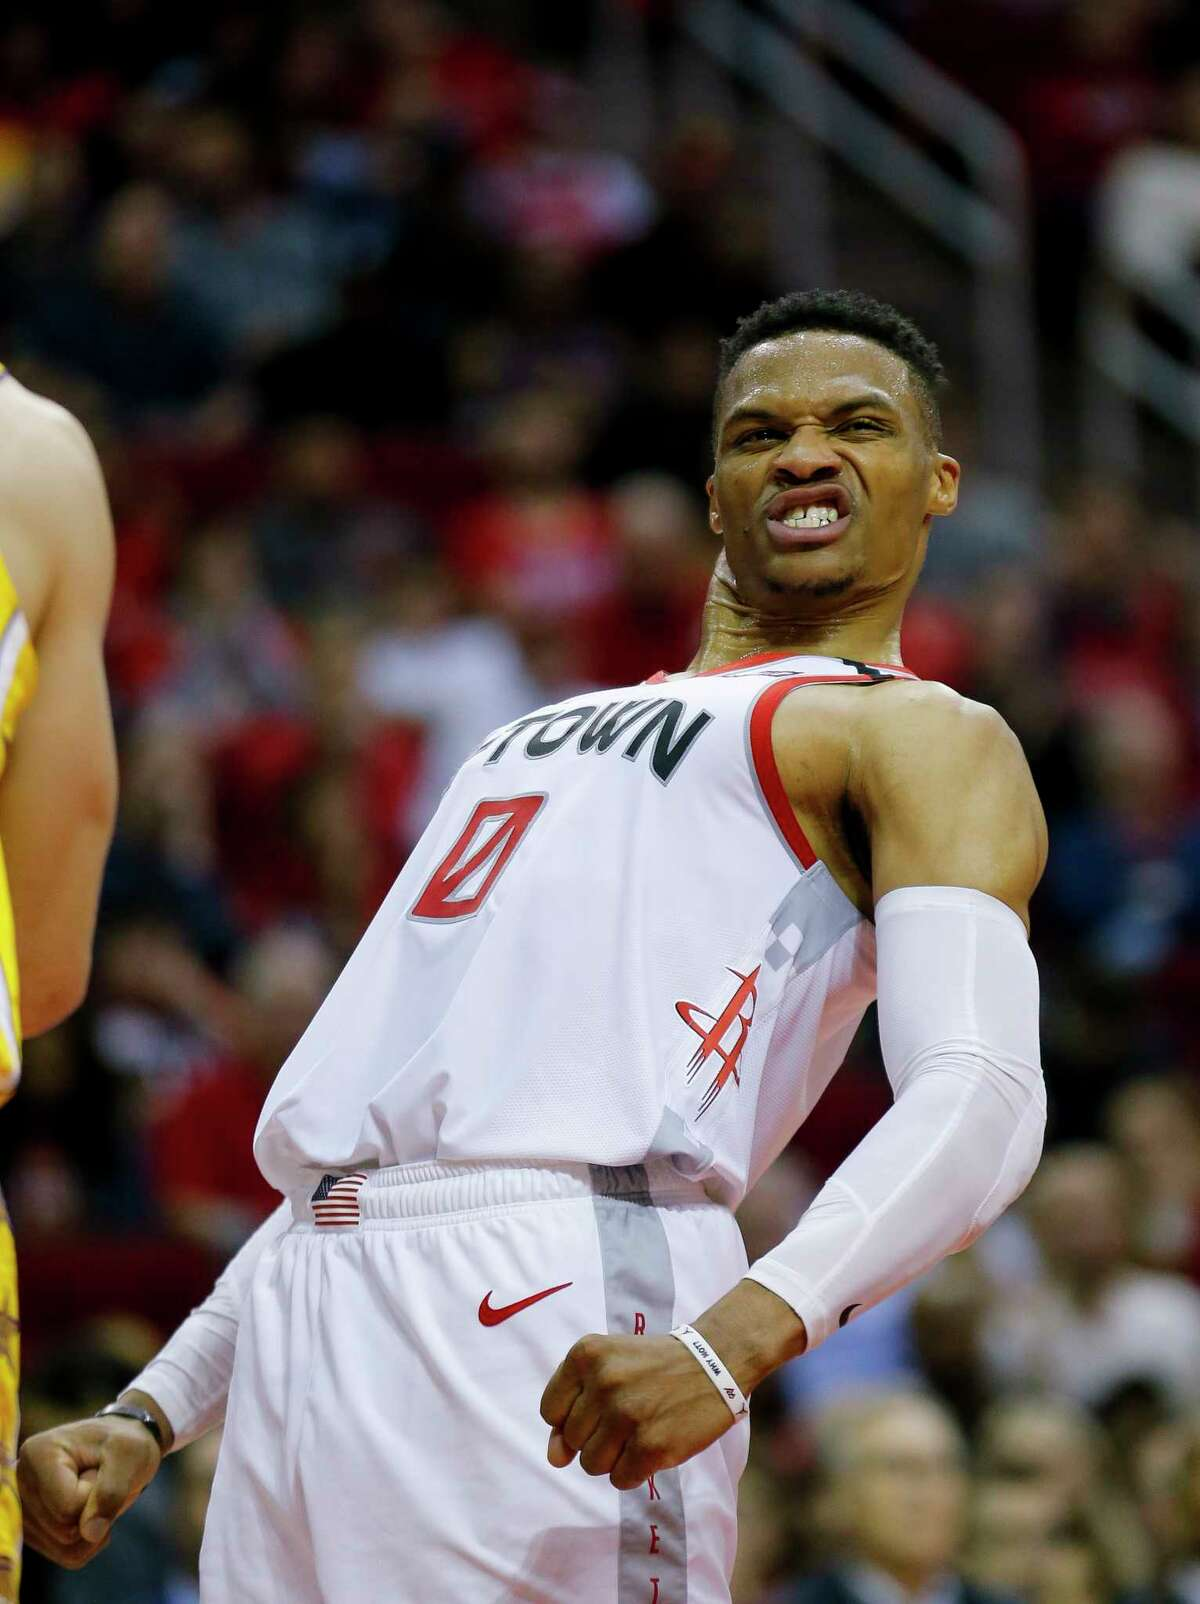 Houston Rockets guard Russell Westbrook (0) reacts after making a basket despite being fouled by Los Angeles Lakers center Dwight Howard (39) during the first half of an NBA game at the Toyota Center on Saturday, Jan. 18, 2020.